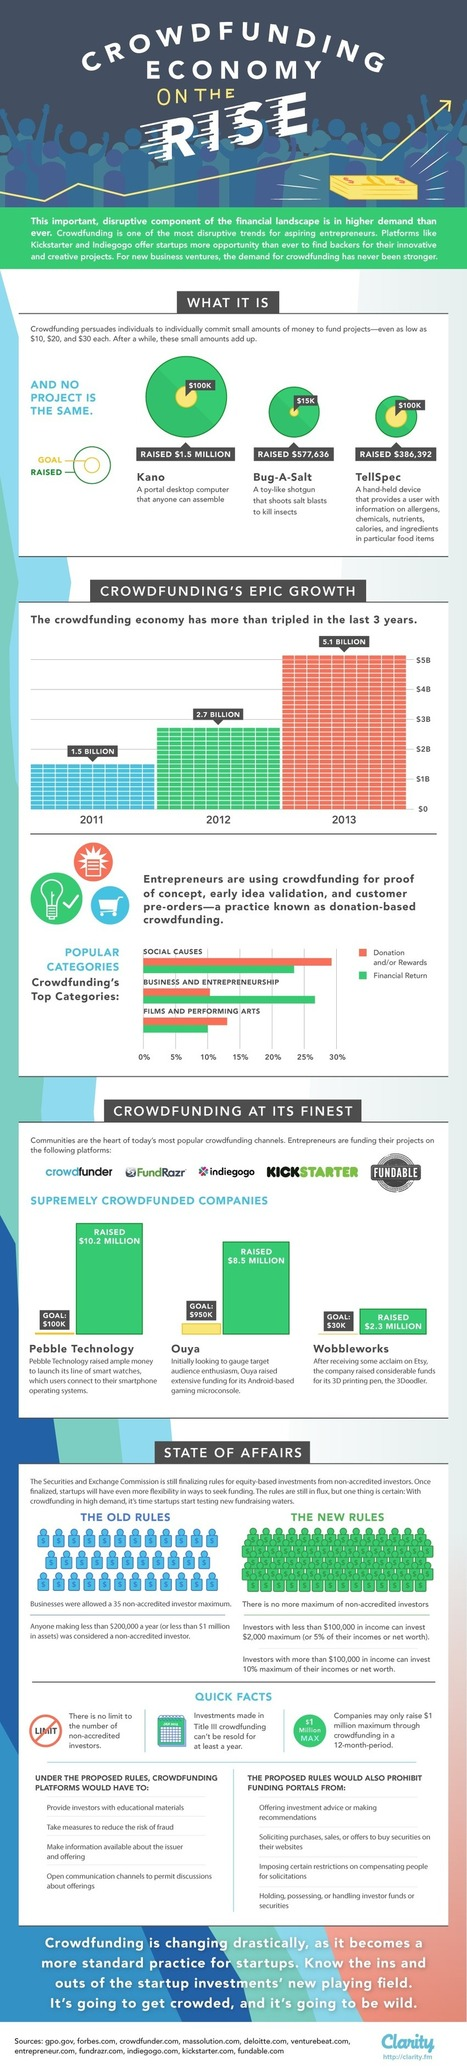 Crowdfunding's Epic Growth [INFOGRAPHIC] - Clarity | Digital & Internet Marketing News | Scoop.it